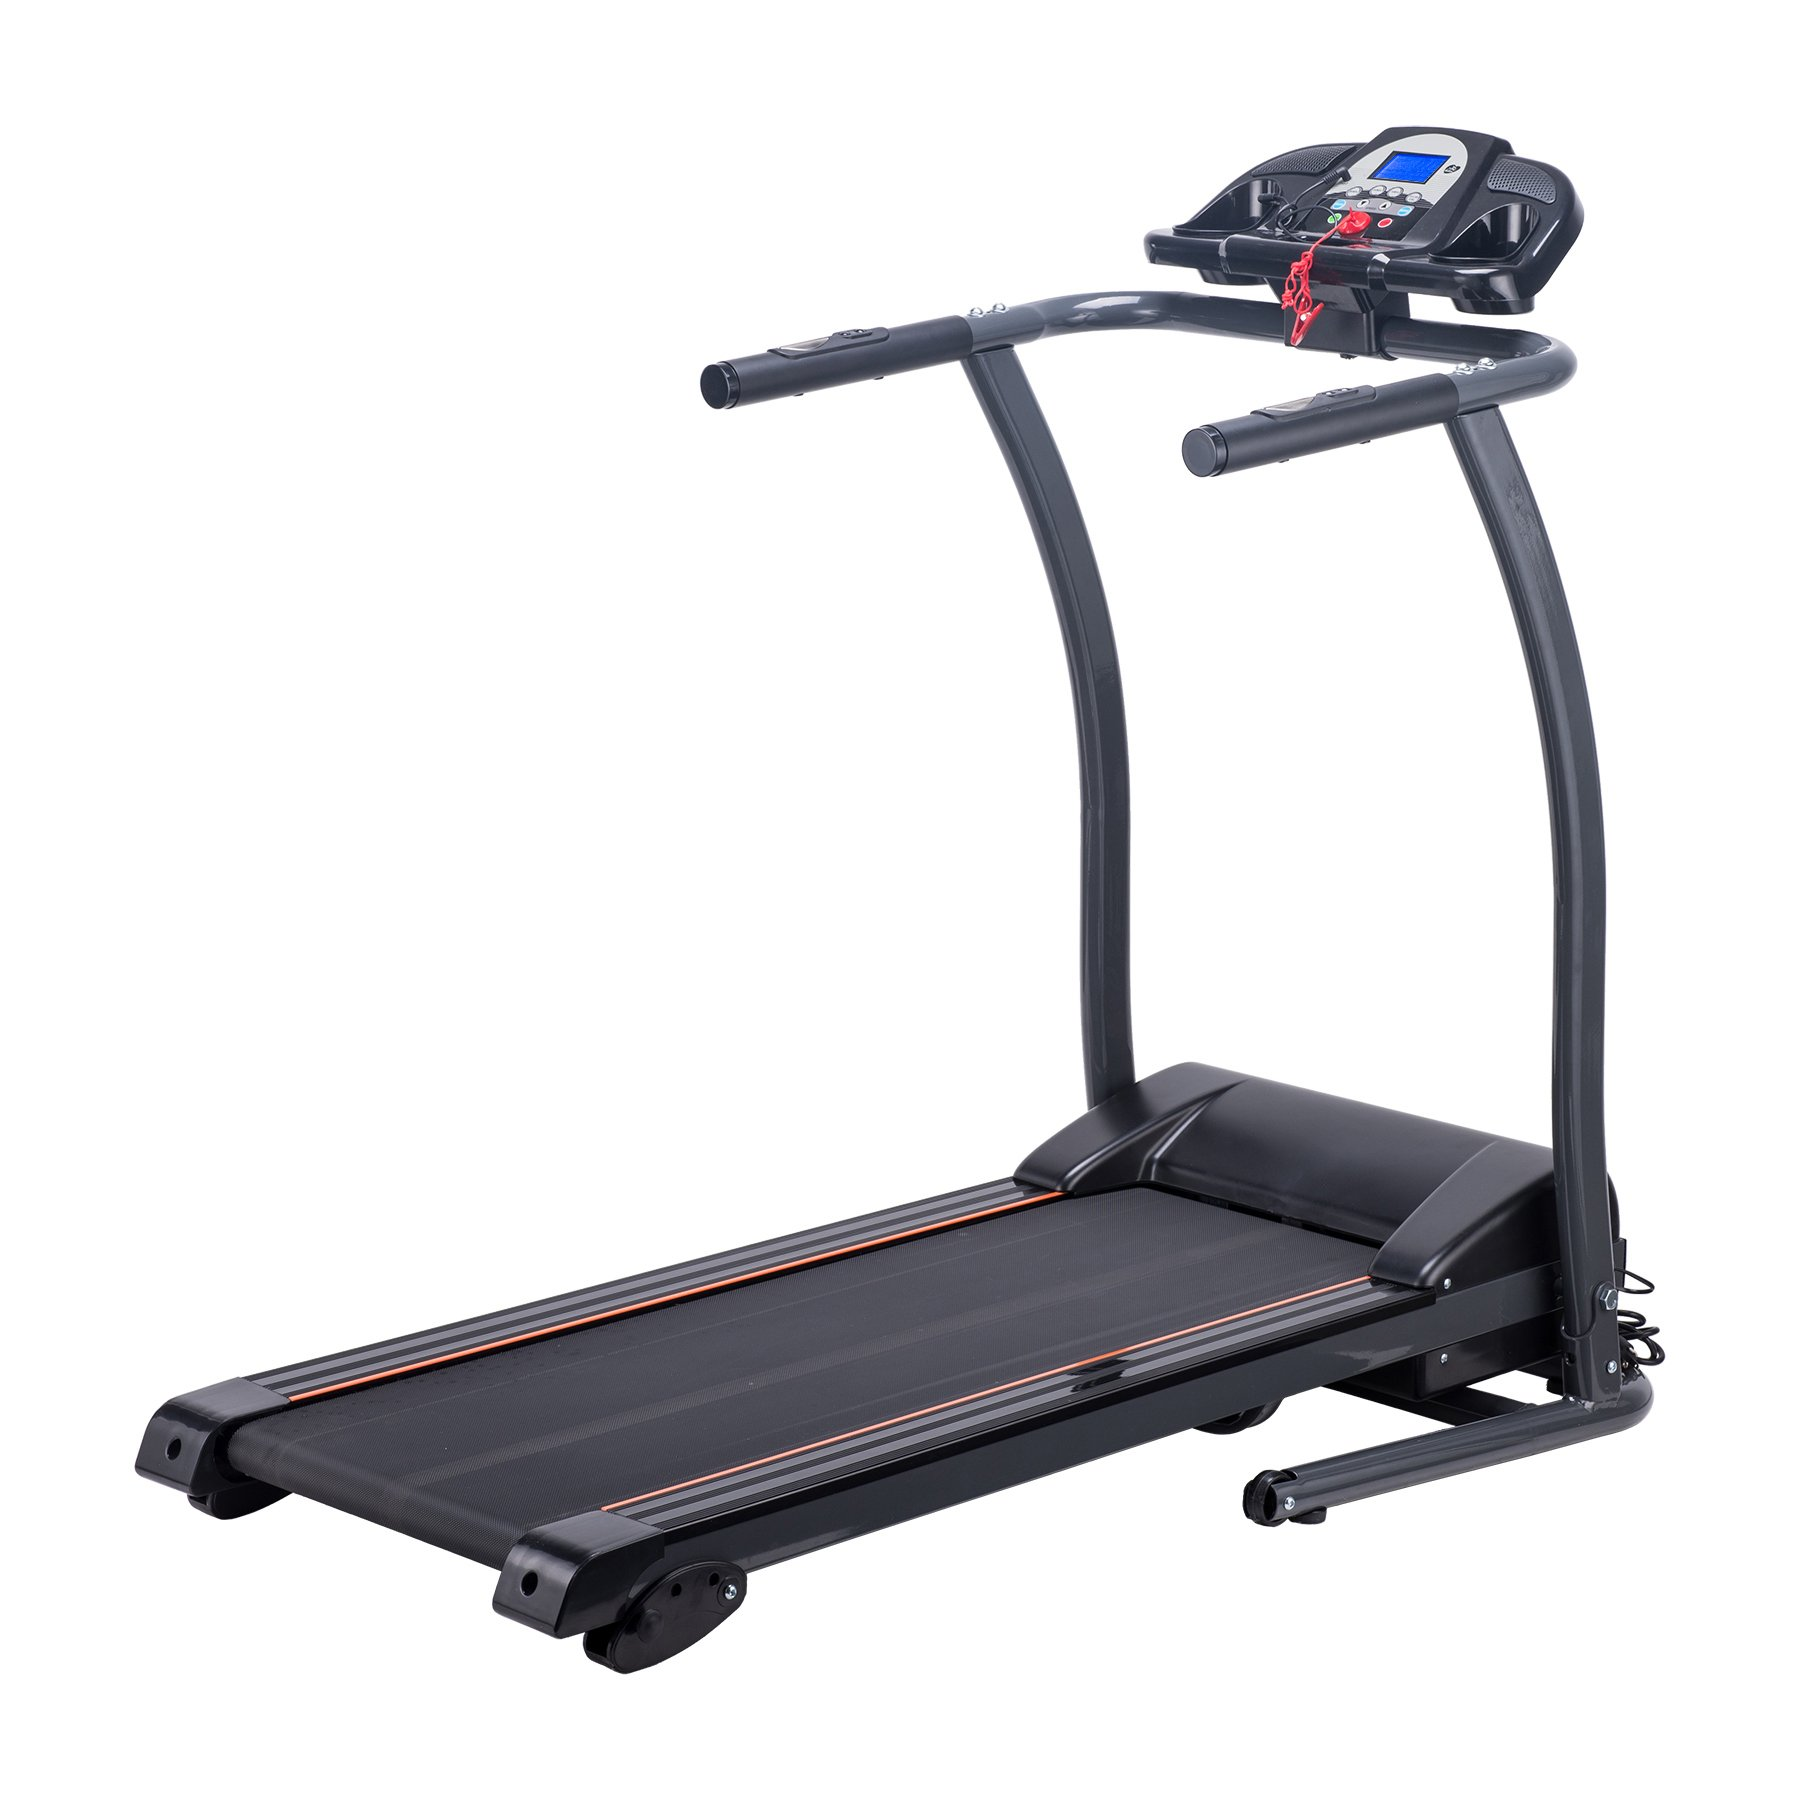 Pinty Folding Treadmill Incline Motorized Running Machine for Home with LED Display, MP3 Player, Emergency Stop, Miles Track